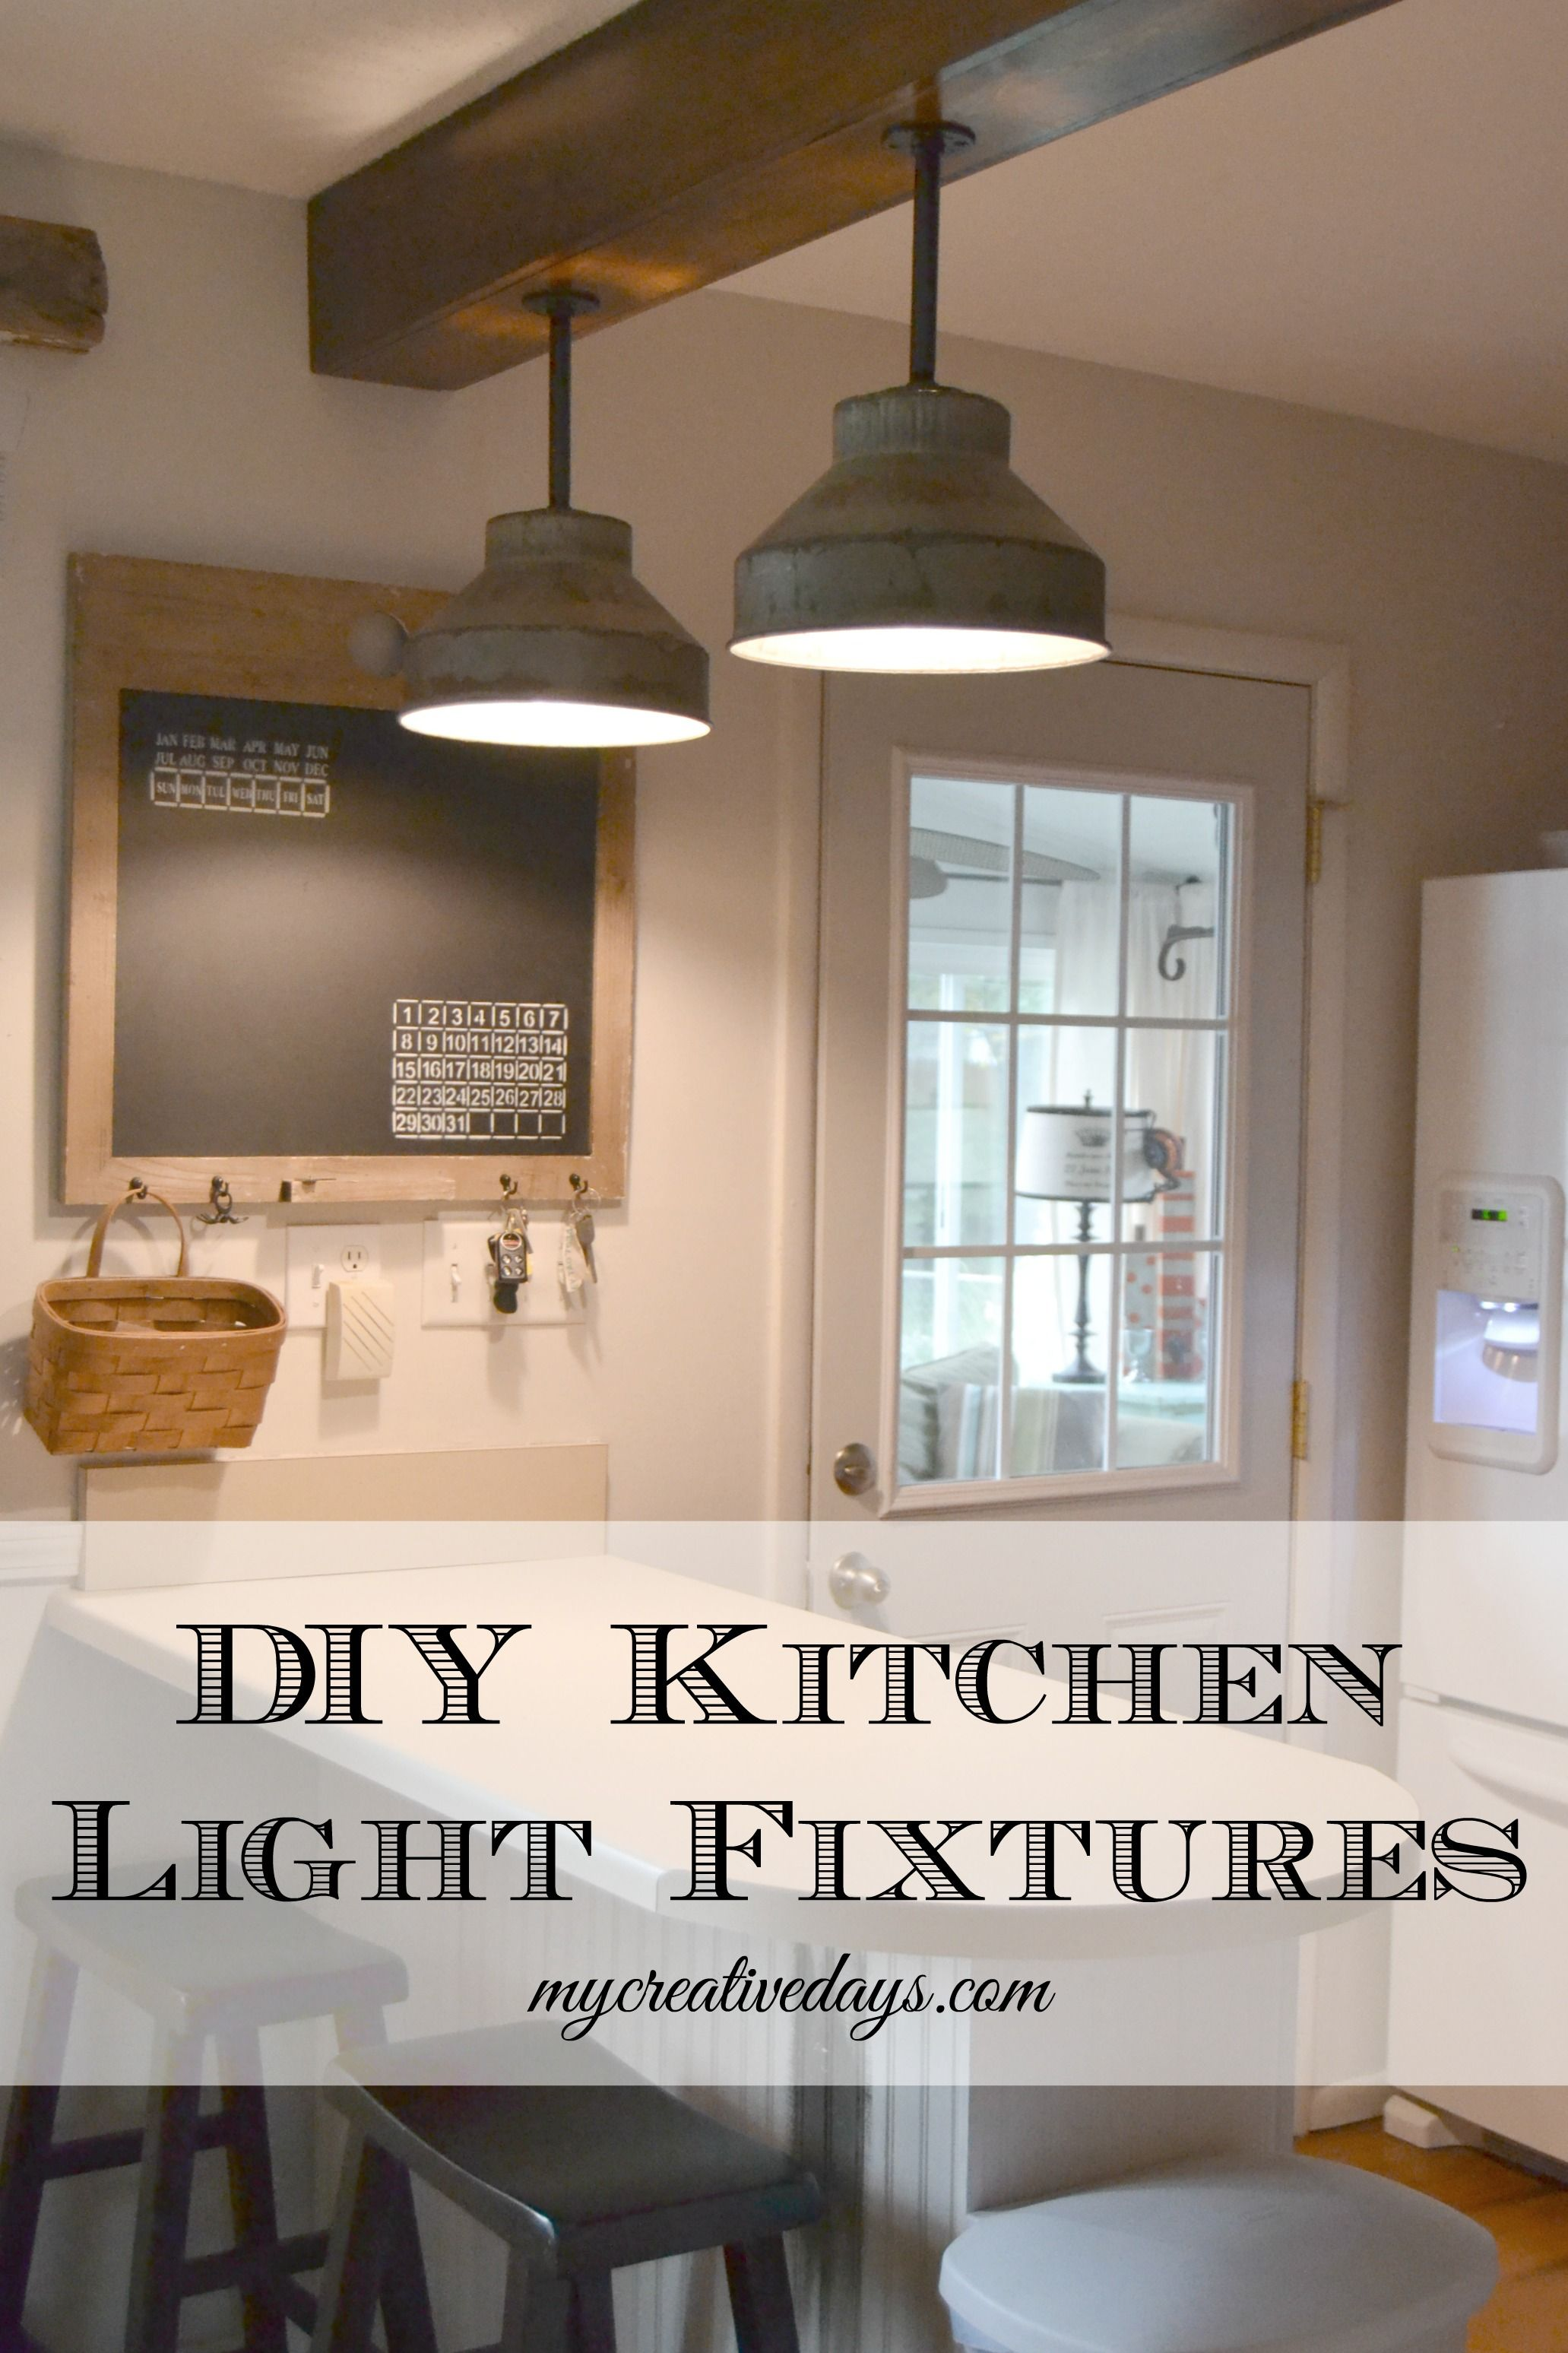 Kitchen Lighting Diy Light Fixtures For The Kitchen Diy Diy Kitchen Lighting